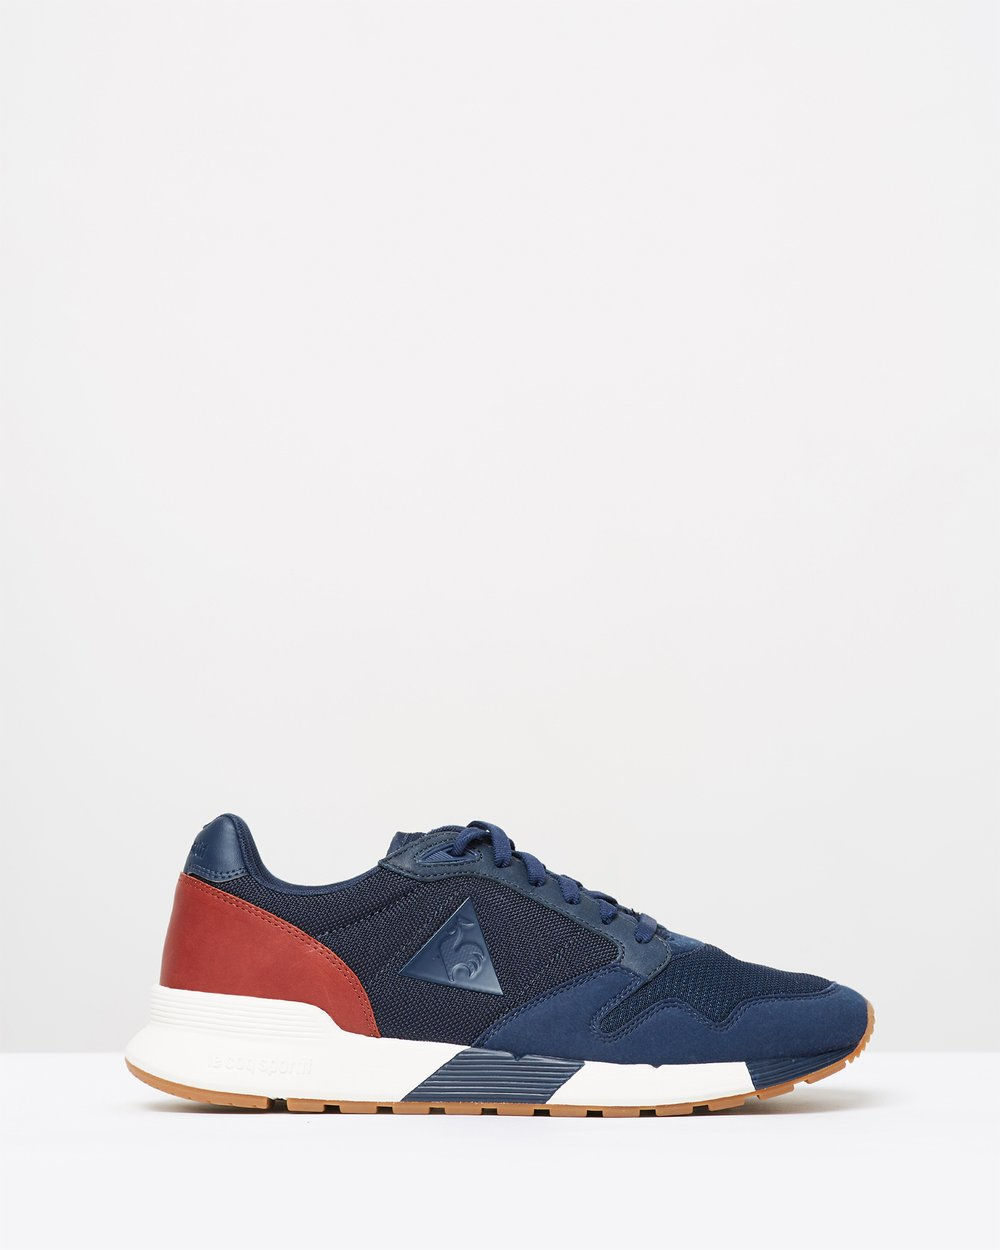 1b5a1115cd22 Omega X Craft by Le Coq Sportif Online